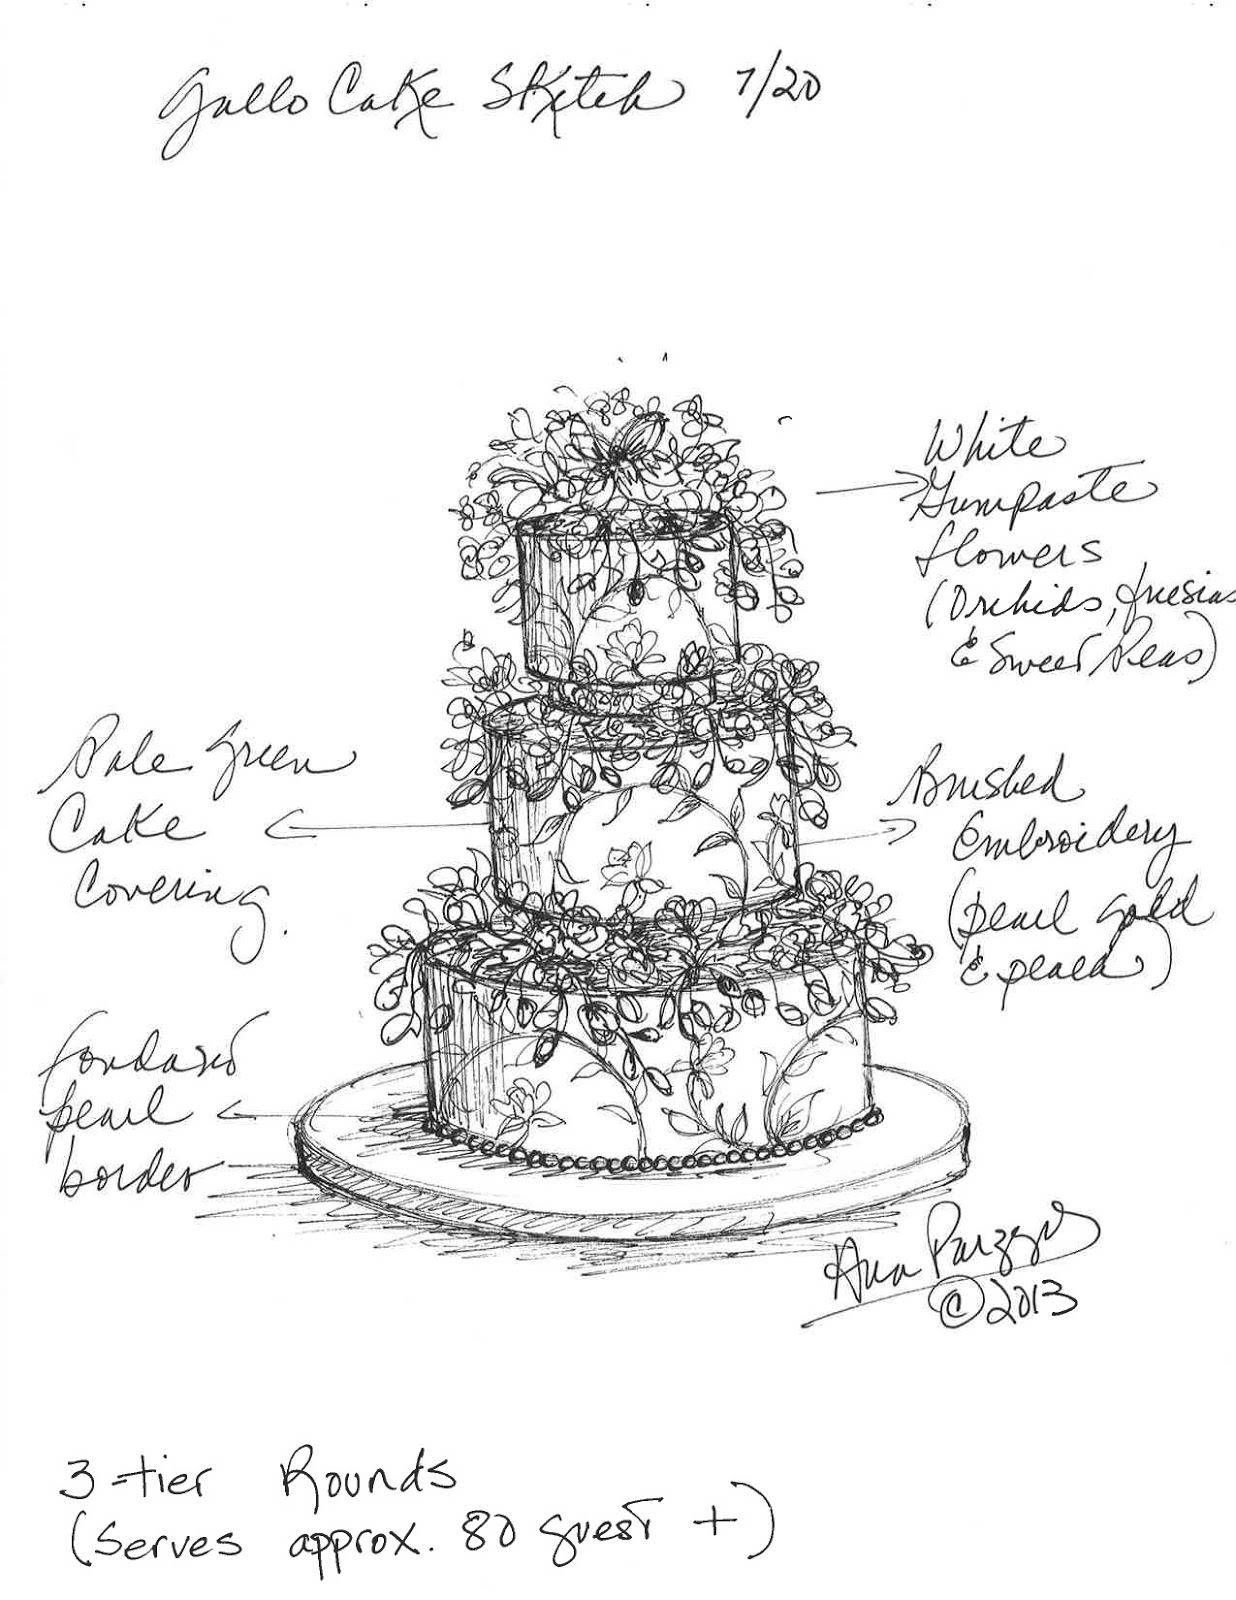 For the Love of Cake! by Garry & Ana Parzych: From the